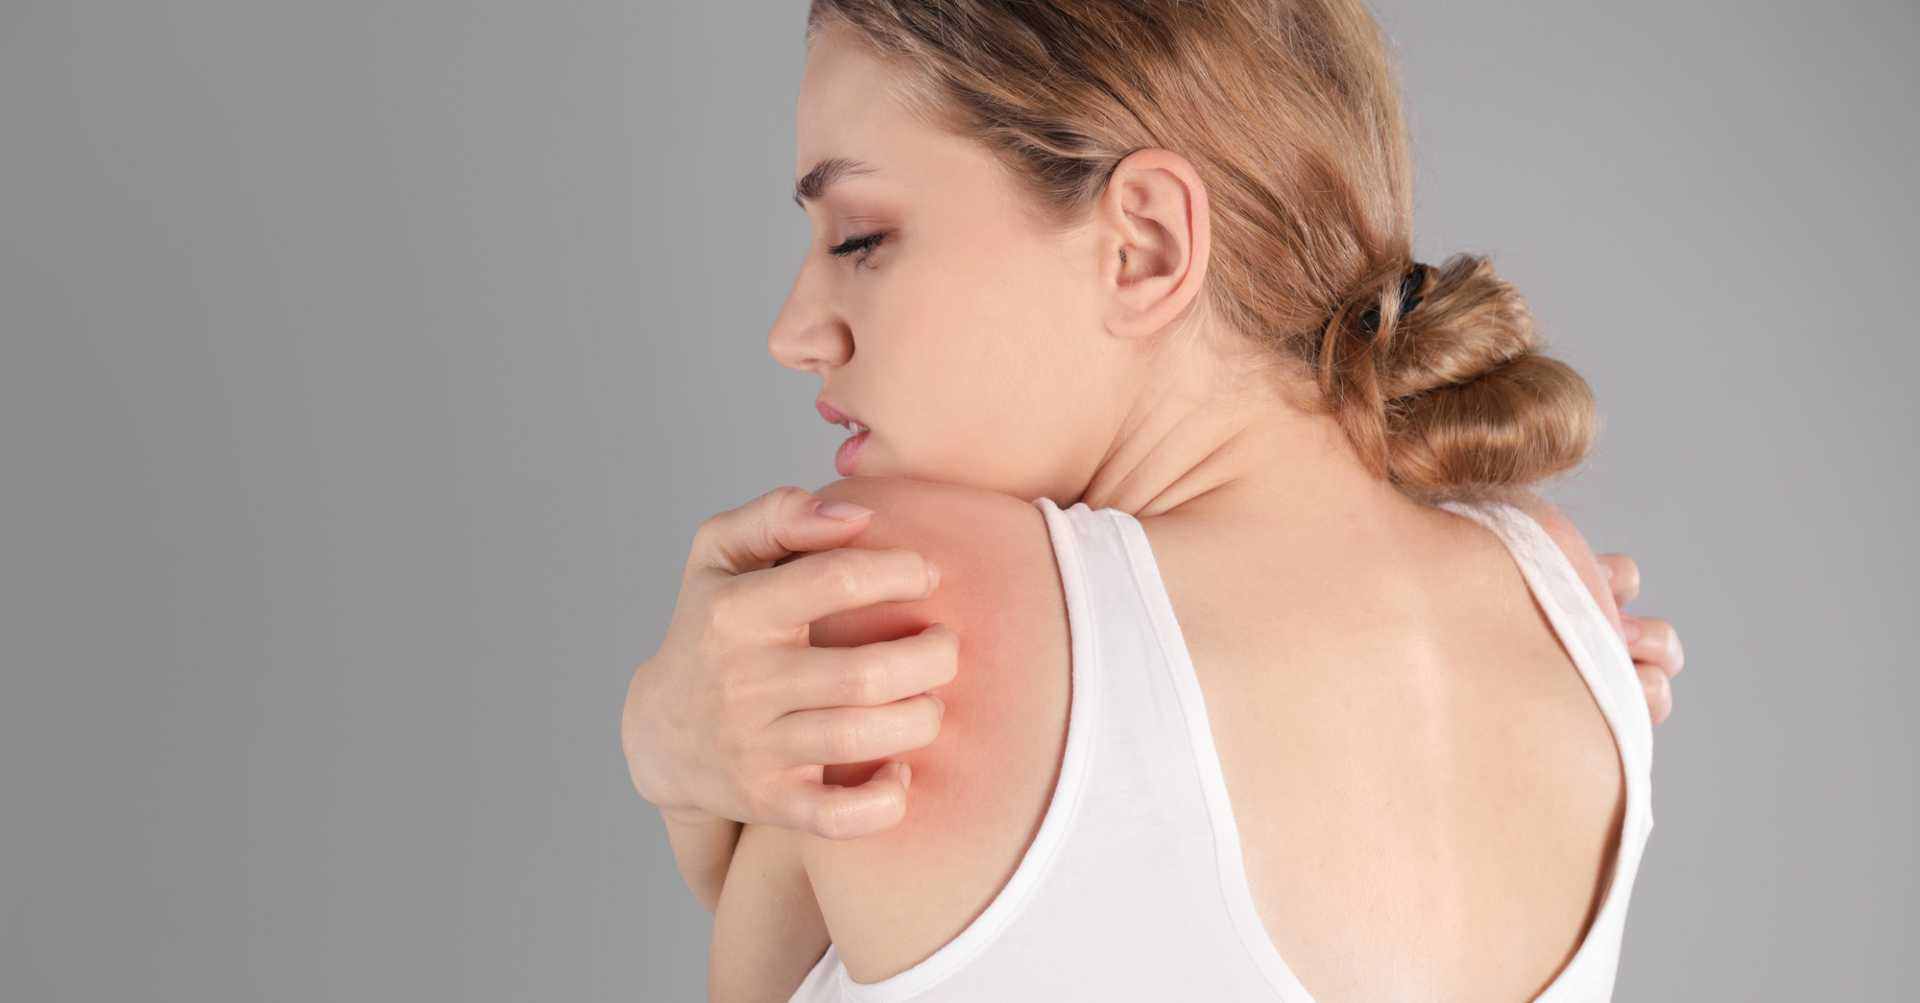 woman scratching her back that has prickly heat rash